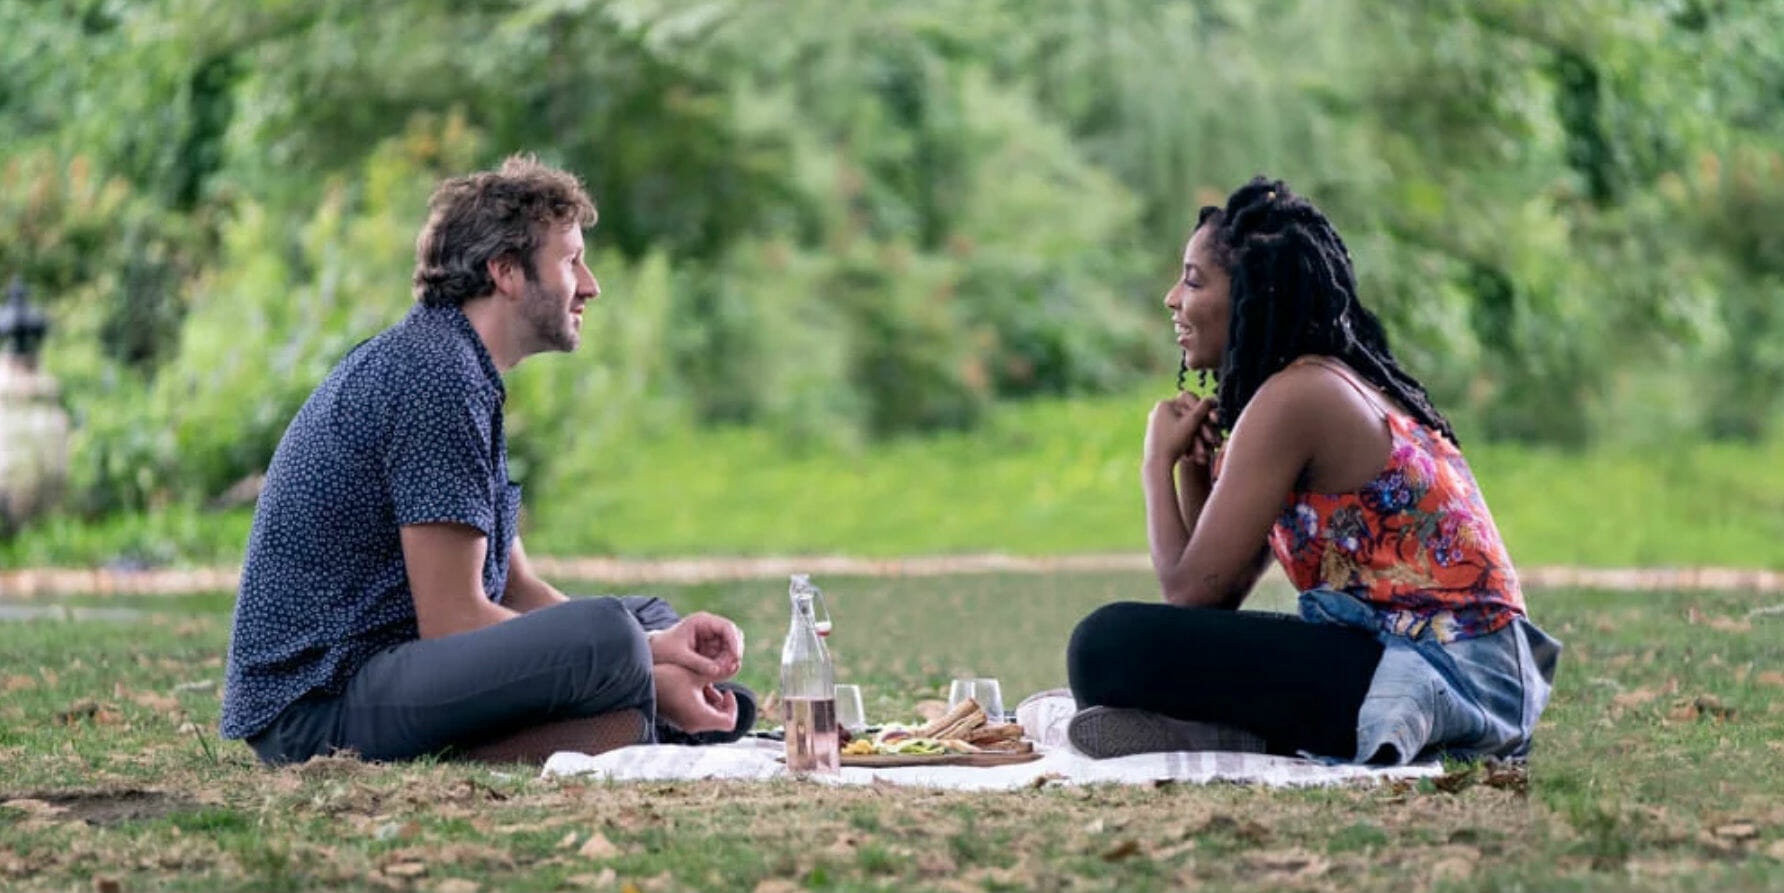 netflix original romantic comedies - the incredible jessica james